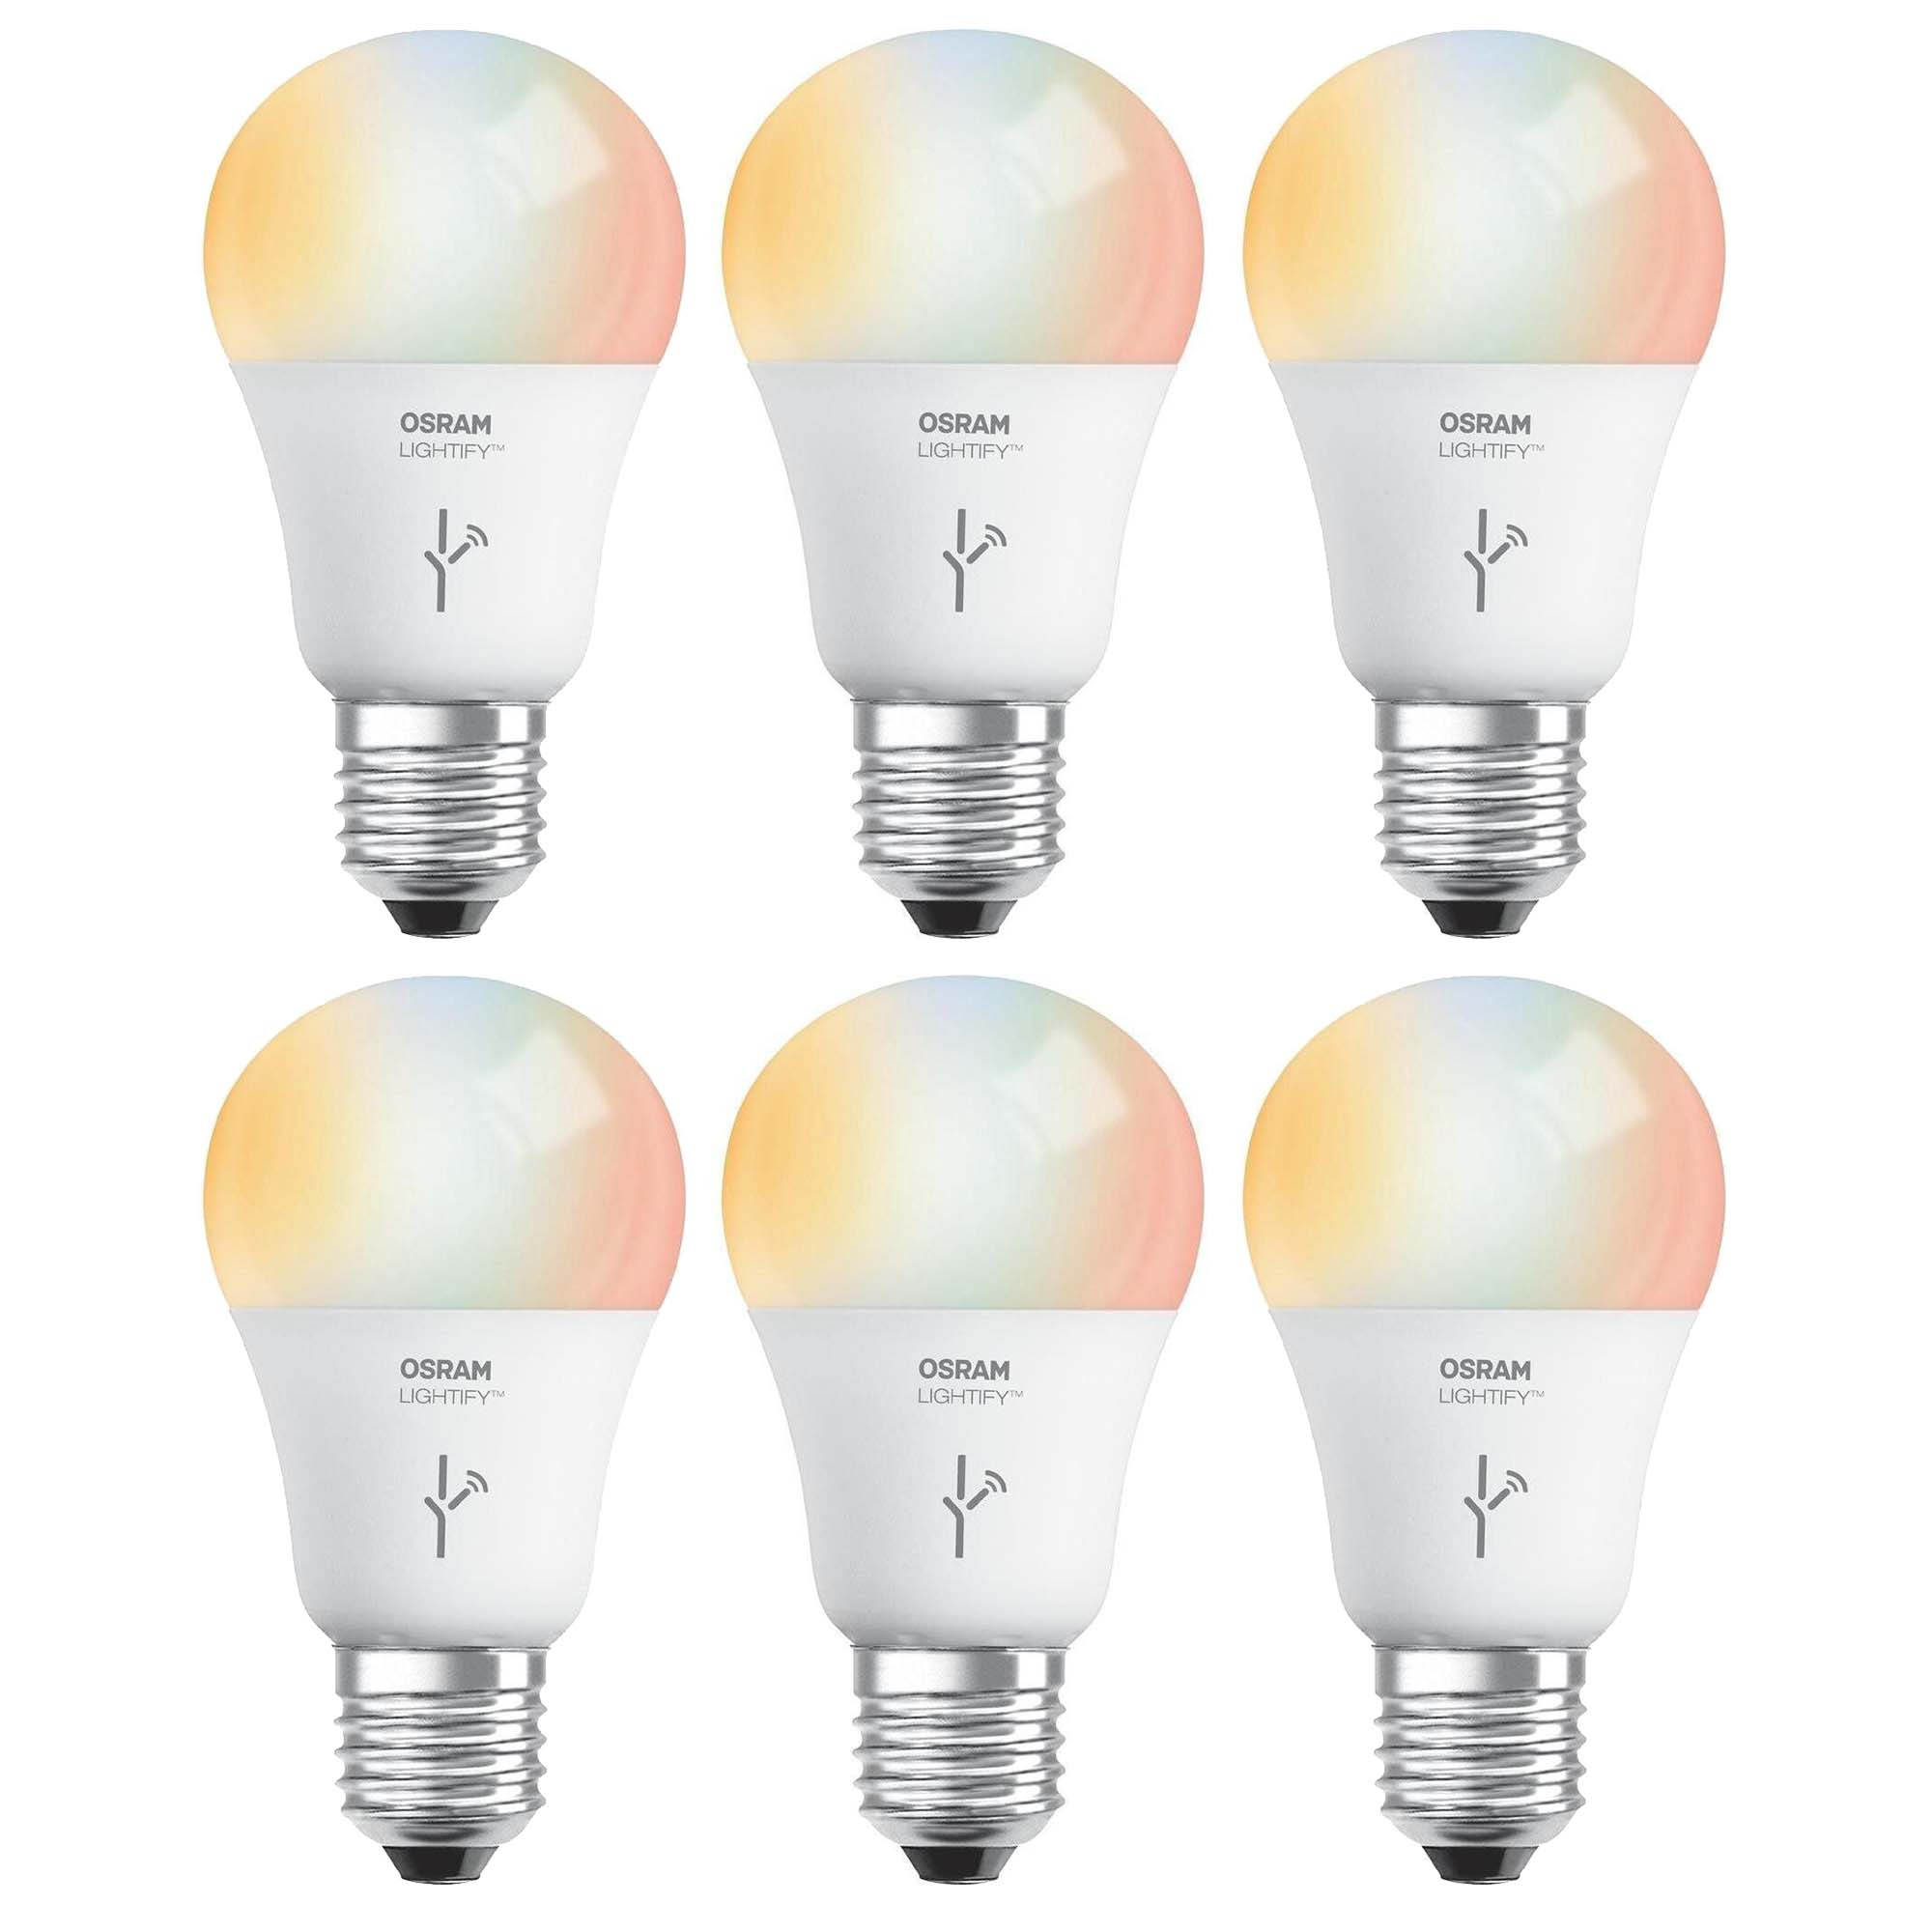 Sylvania osram lightify 60w a19 daylight rgb smart led light bulb 6 pack Smart light bulbs